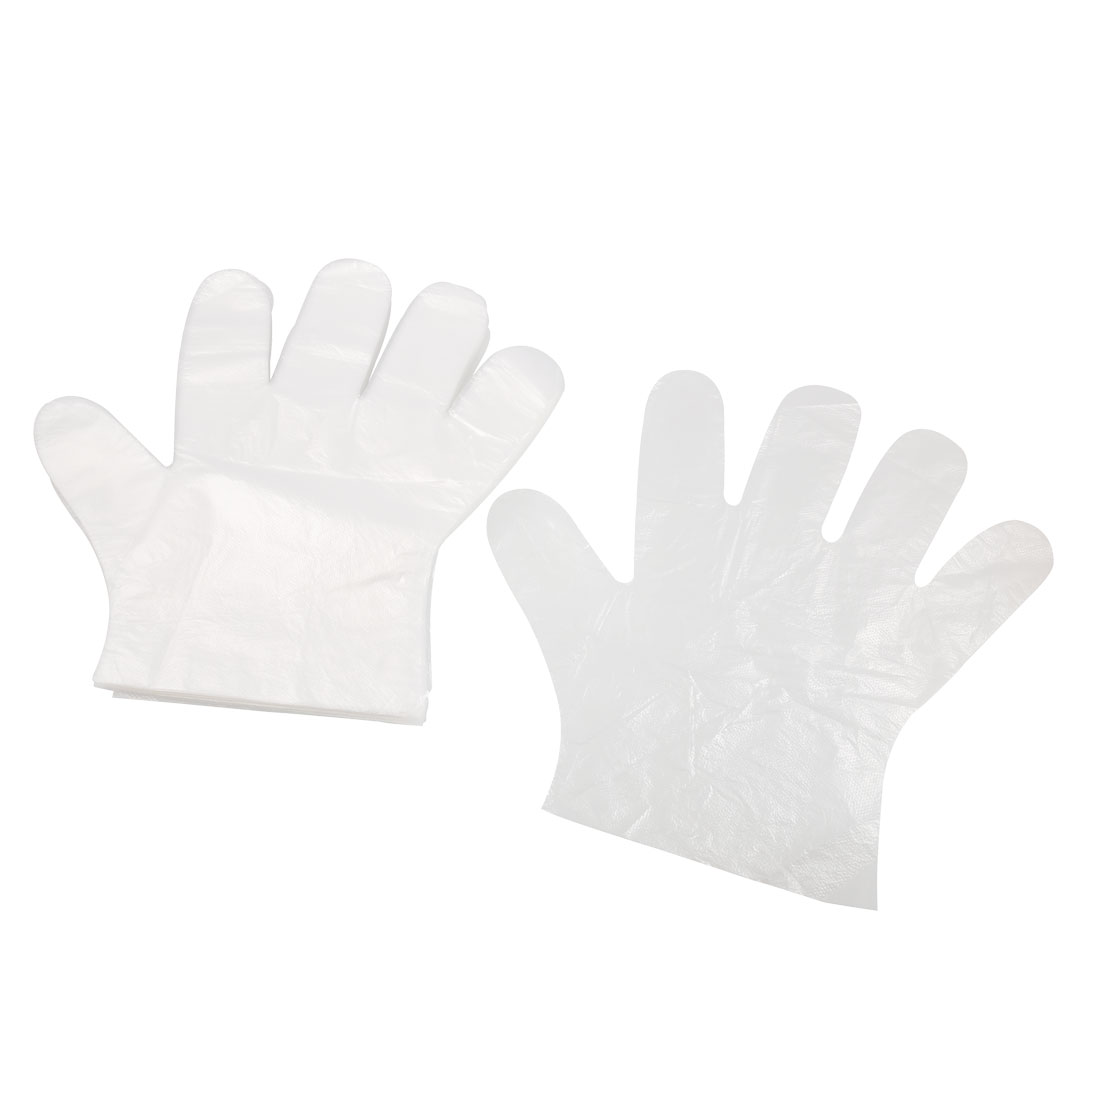 Kitchen Cleaning Multipurpose Plastic Disposable Gloves 50 Pcs